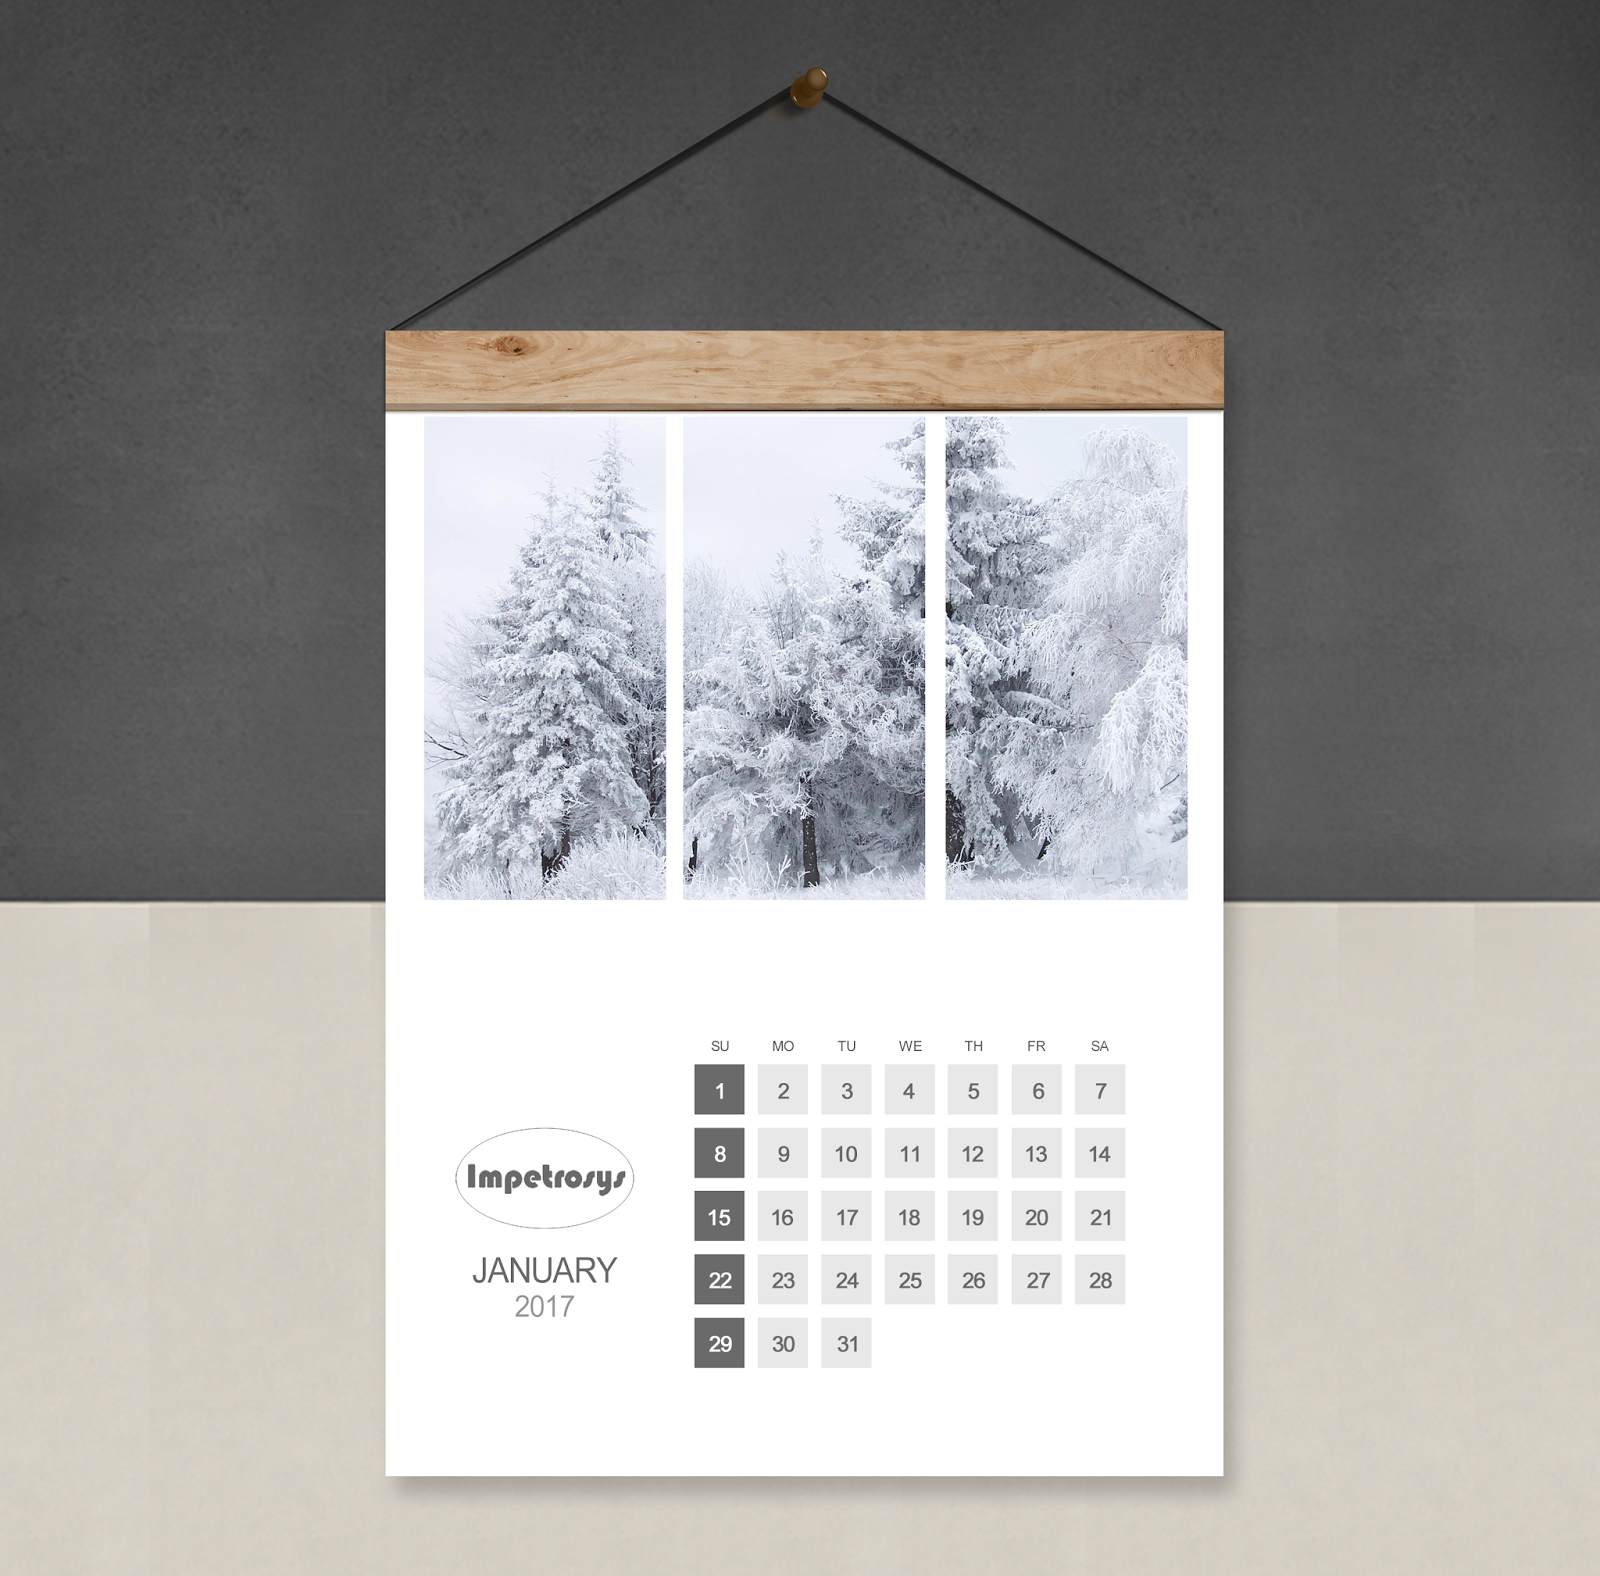 Creative Designs Idea Free   Creative Ideas For Designers Tag   2017 Calendar Design  Calendar Design  calendar design templates   photoshop calendar template  Year 2017 Calendar  calendar design  inspiration